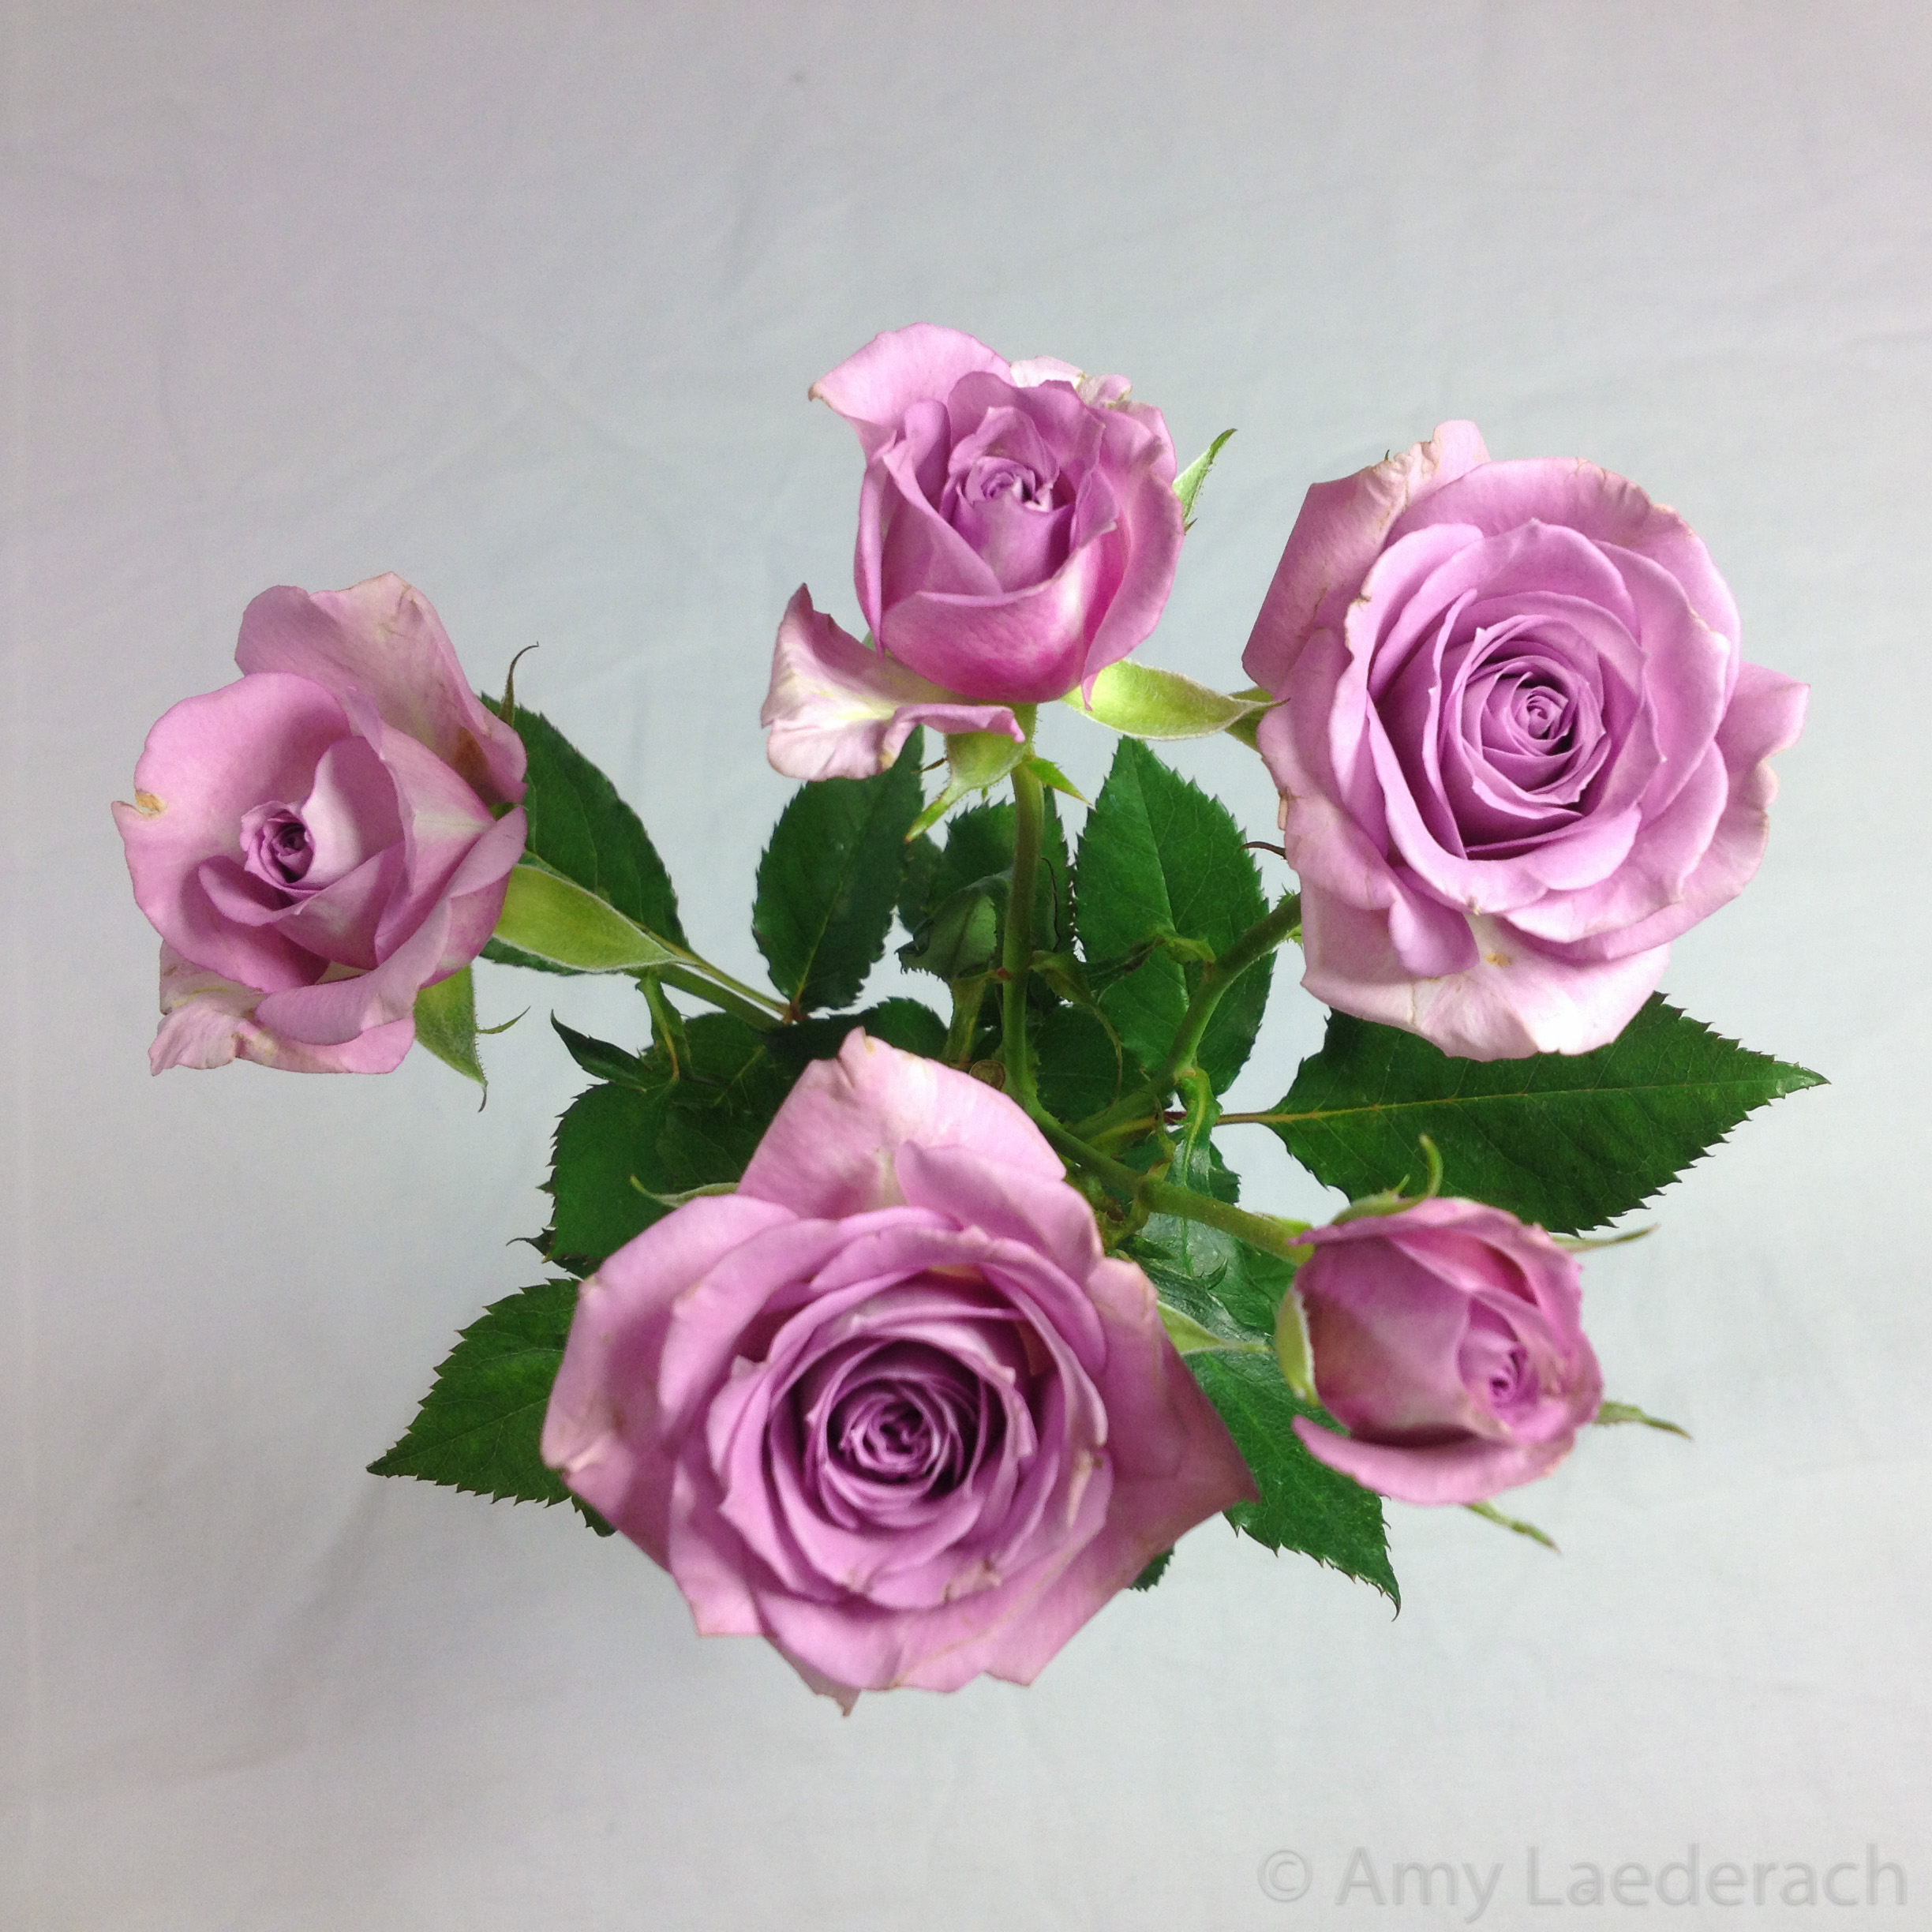 Roses whats with all the roses delightful healing arts violet roses biocorpaavc Images